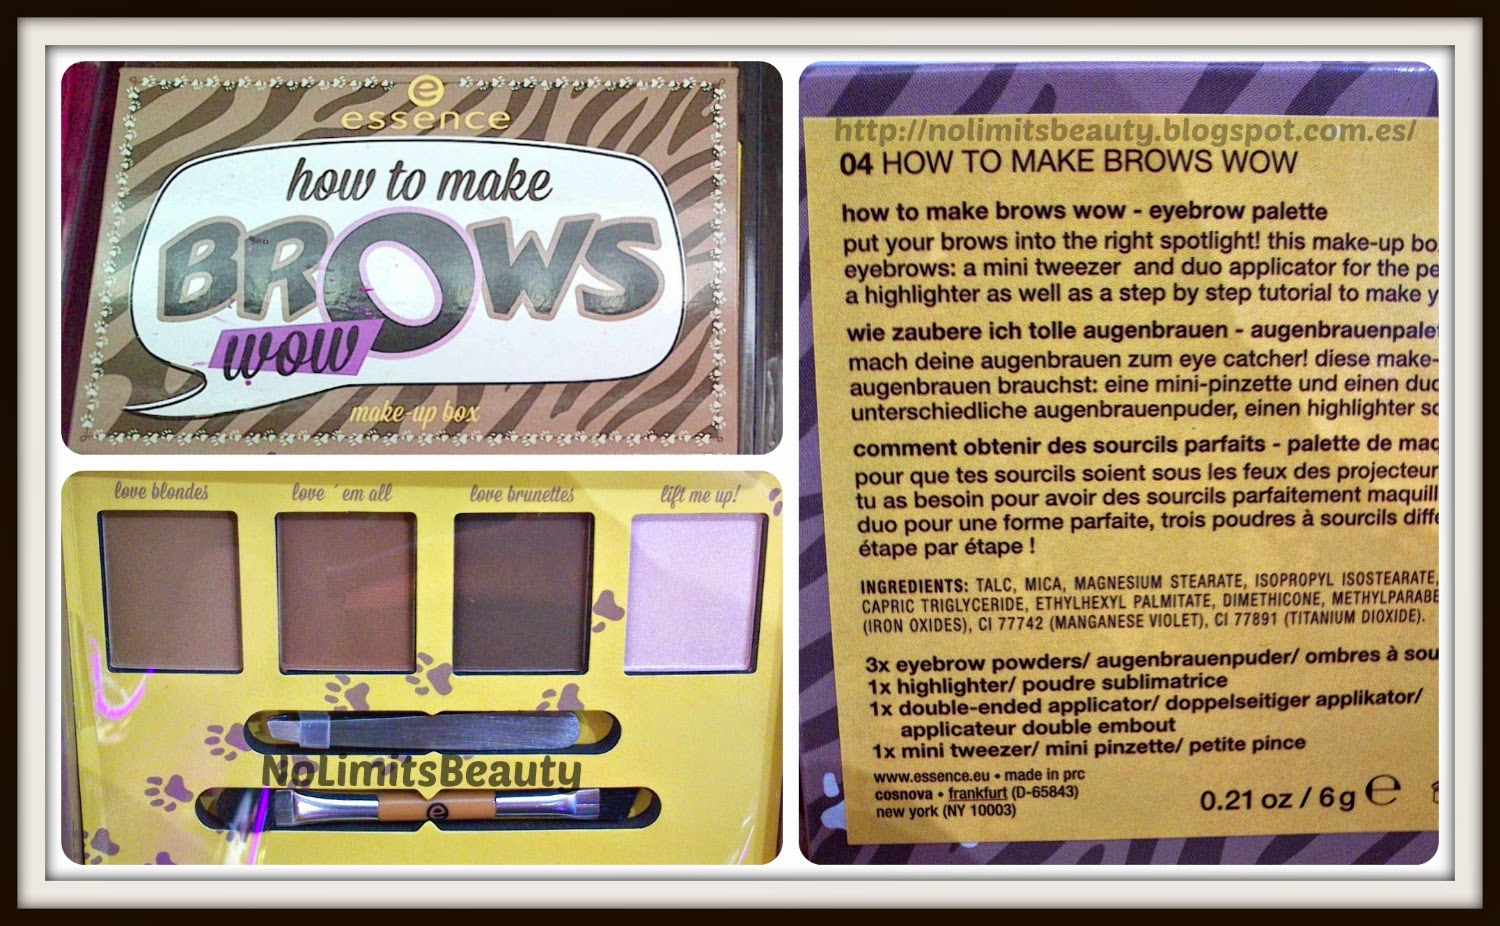 Novedades Essence - Make Up Boxes: How to make Brows Wow